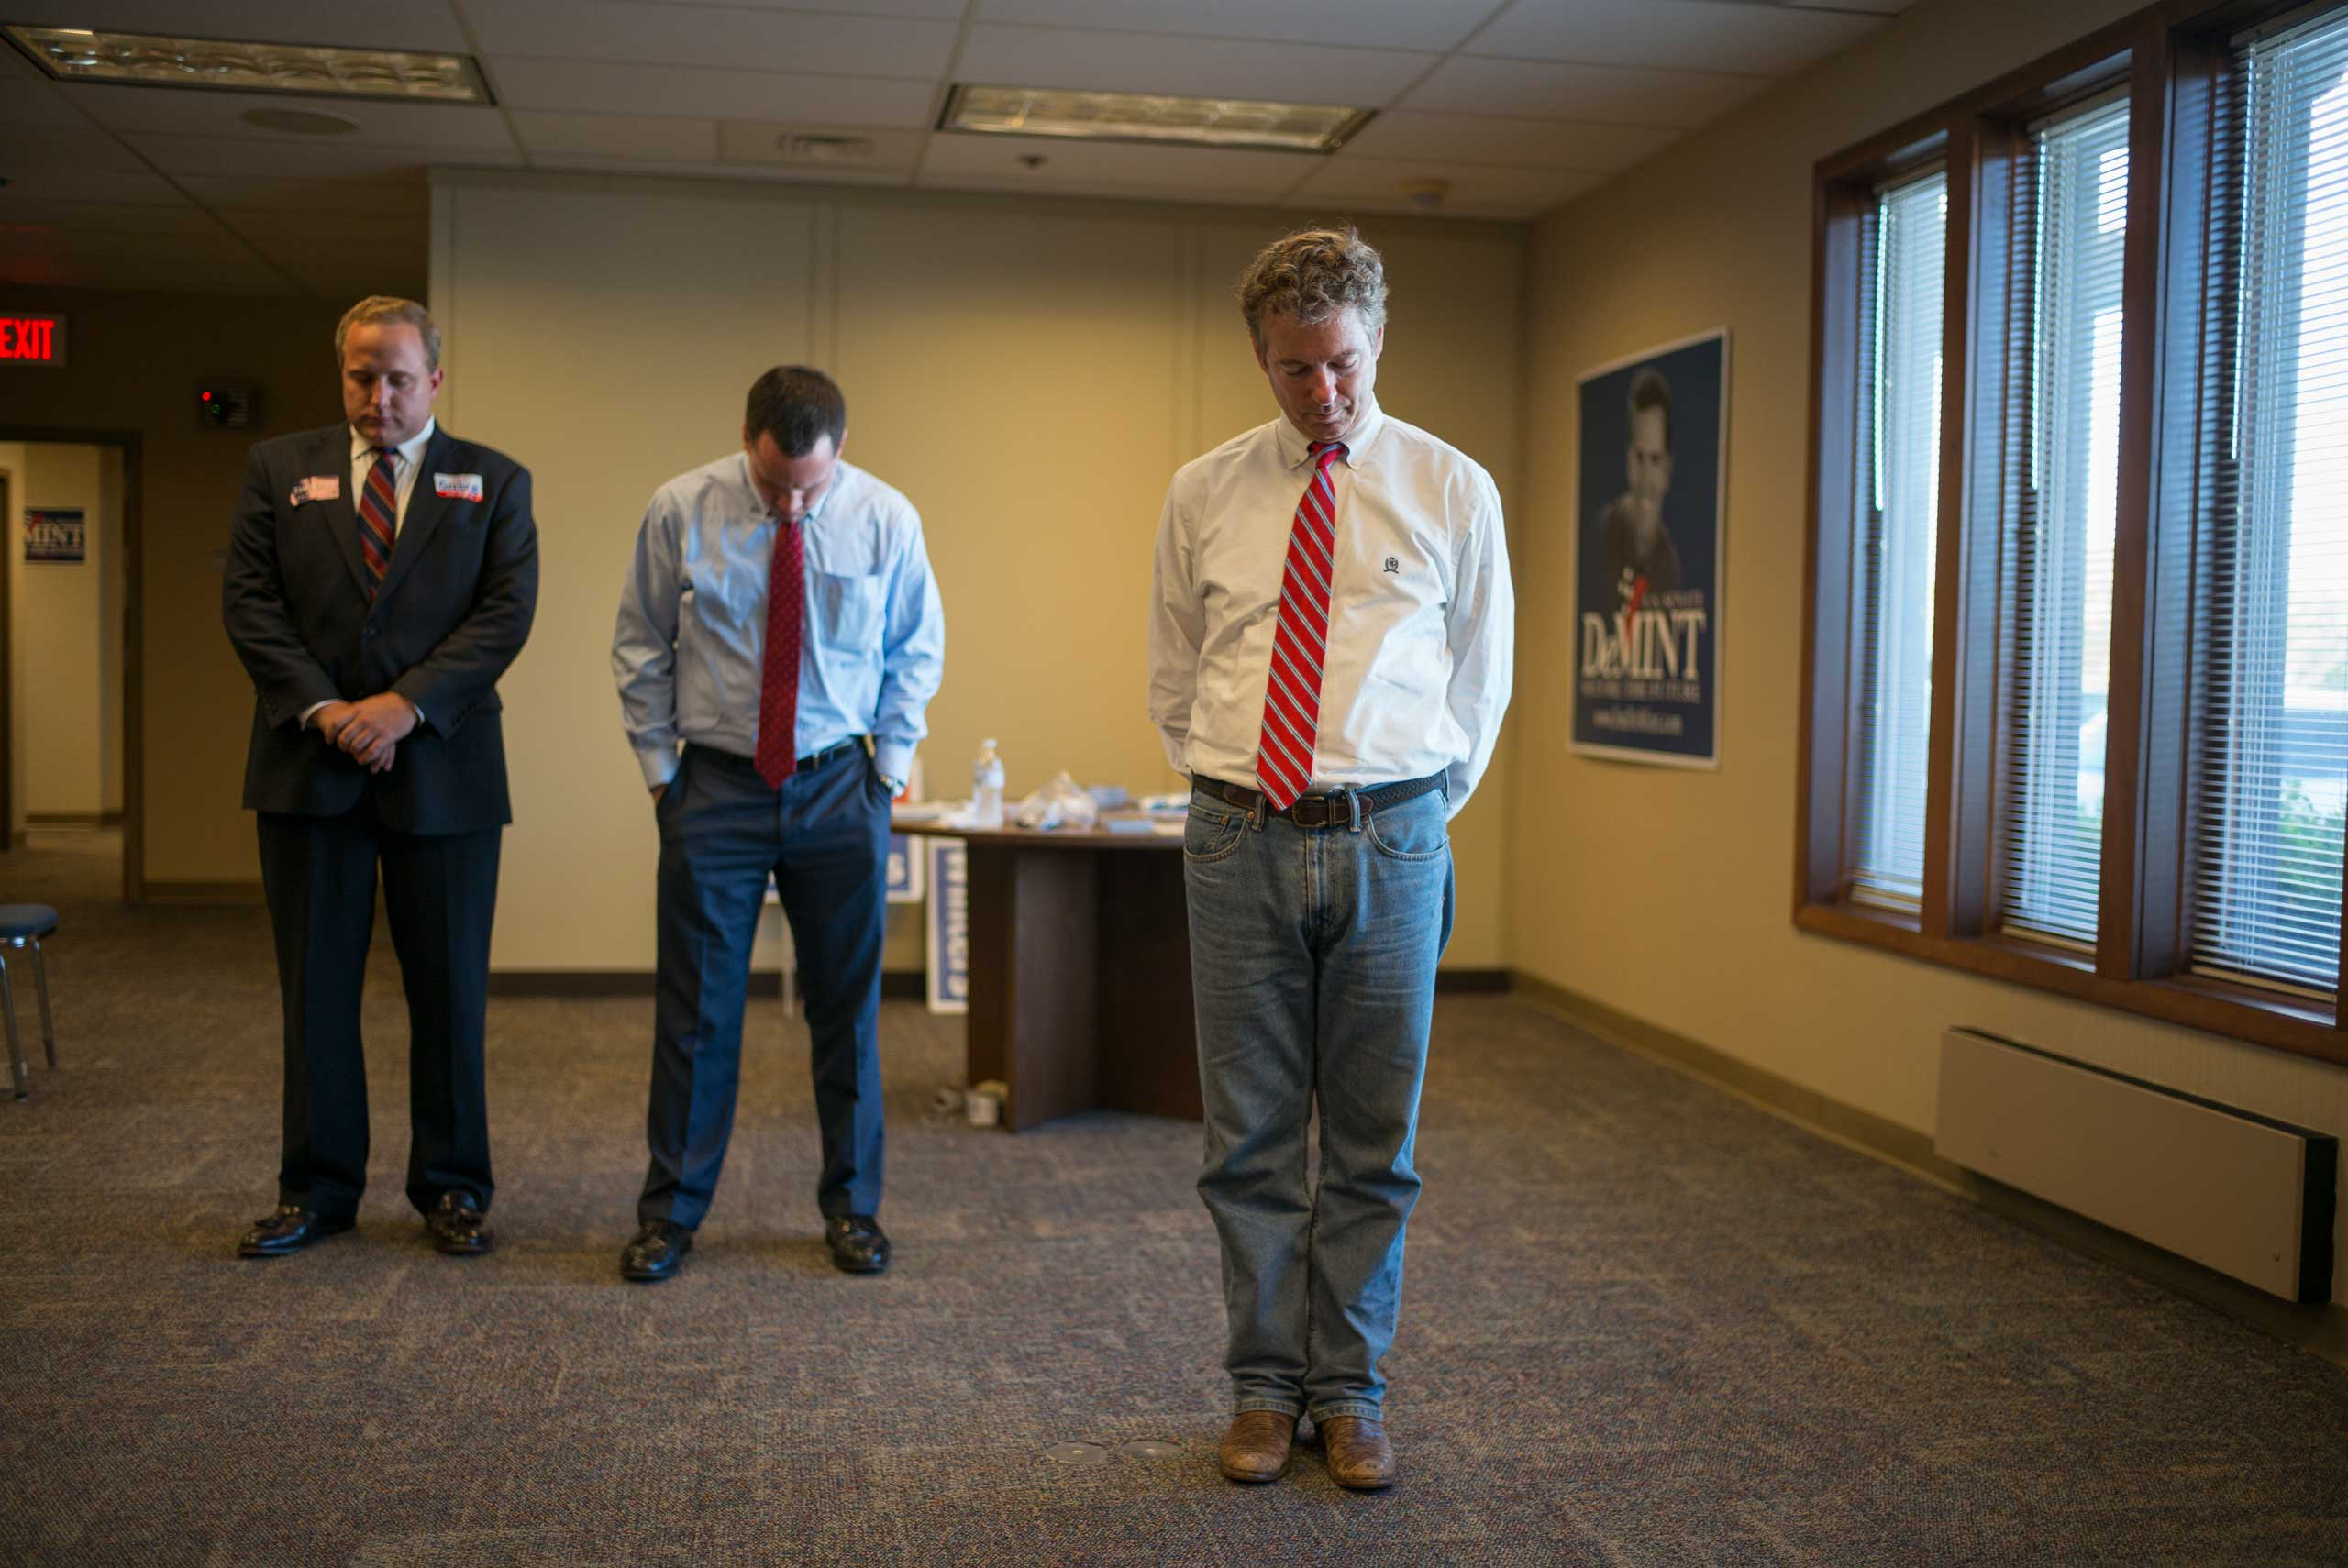 Senator Rand Paul bows his head in prayer before talking to voters at the Horry County Republican Party in Myrtle Beach, S.C. on Sept. 30th, 2014.